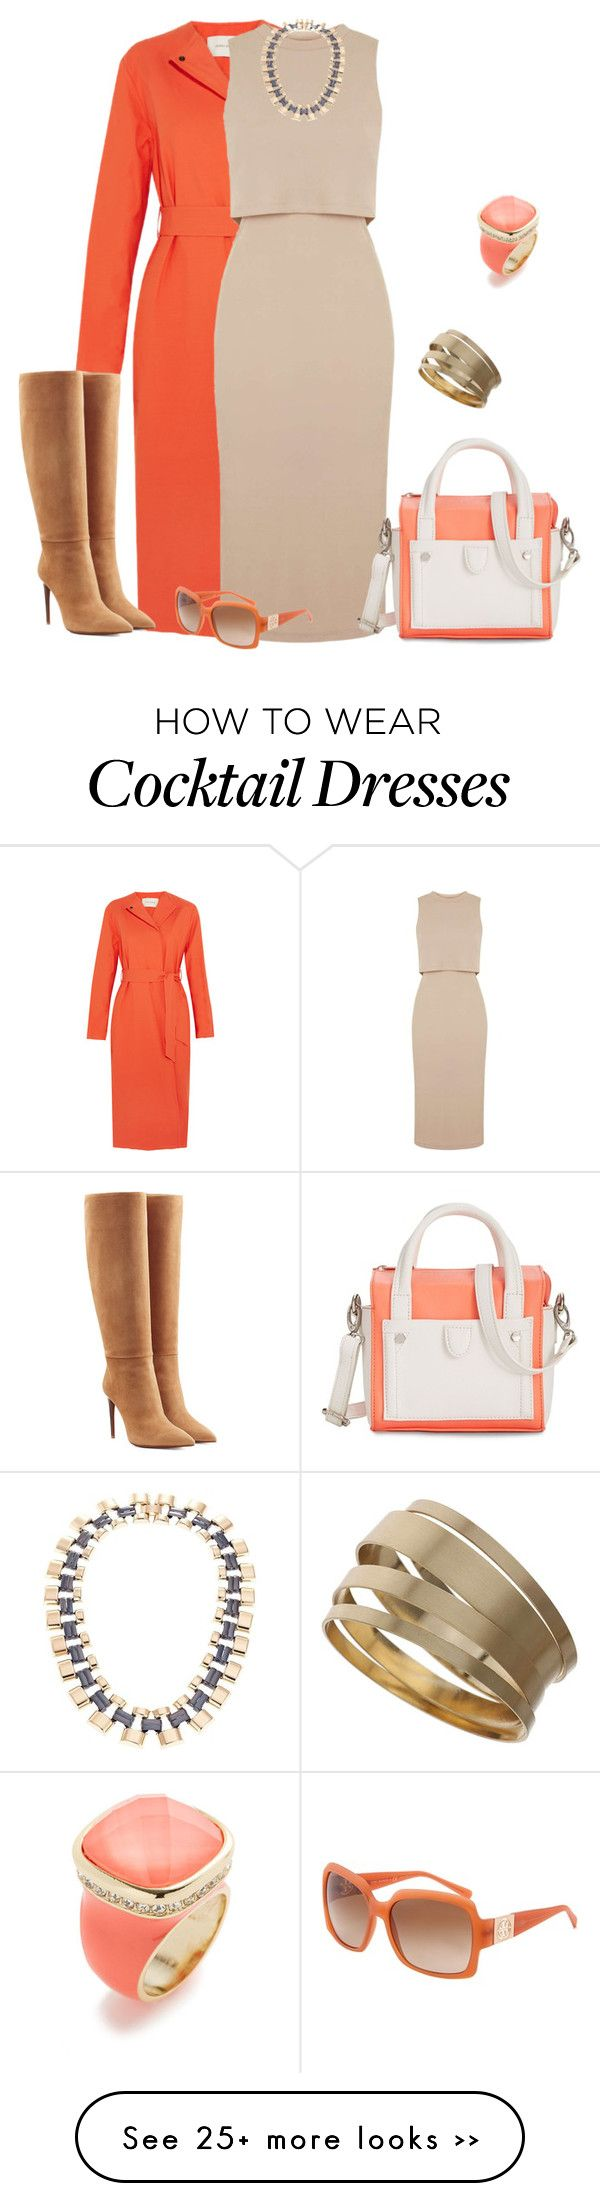 """""""outfit 2074"""" by natalyag on Polyvore"""